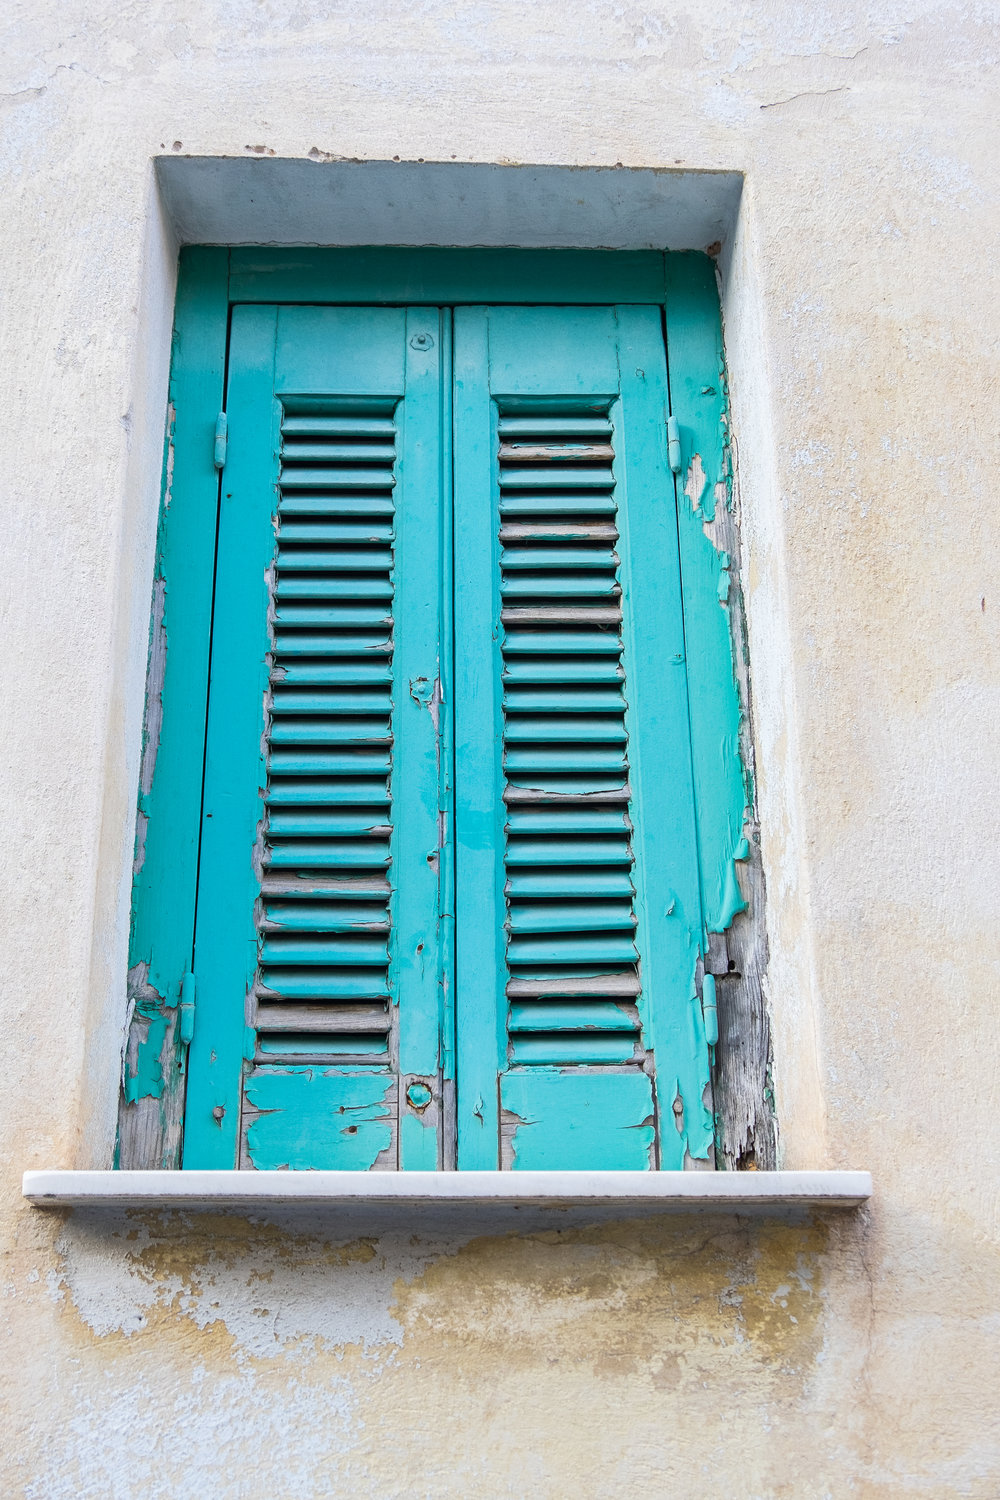 bright blue teal shuttered window with small window ledge